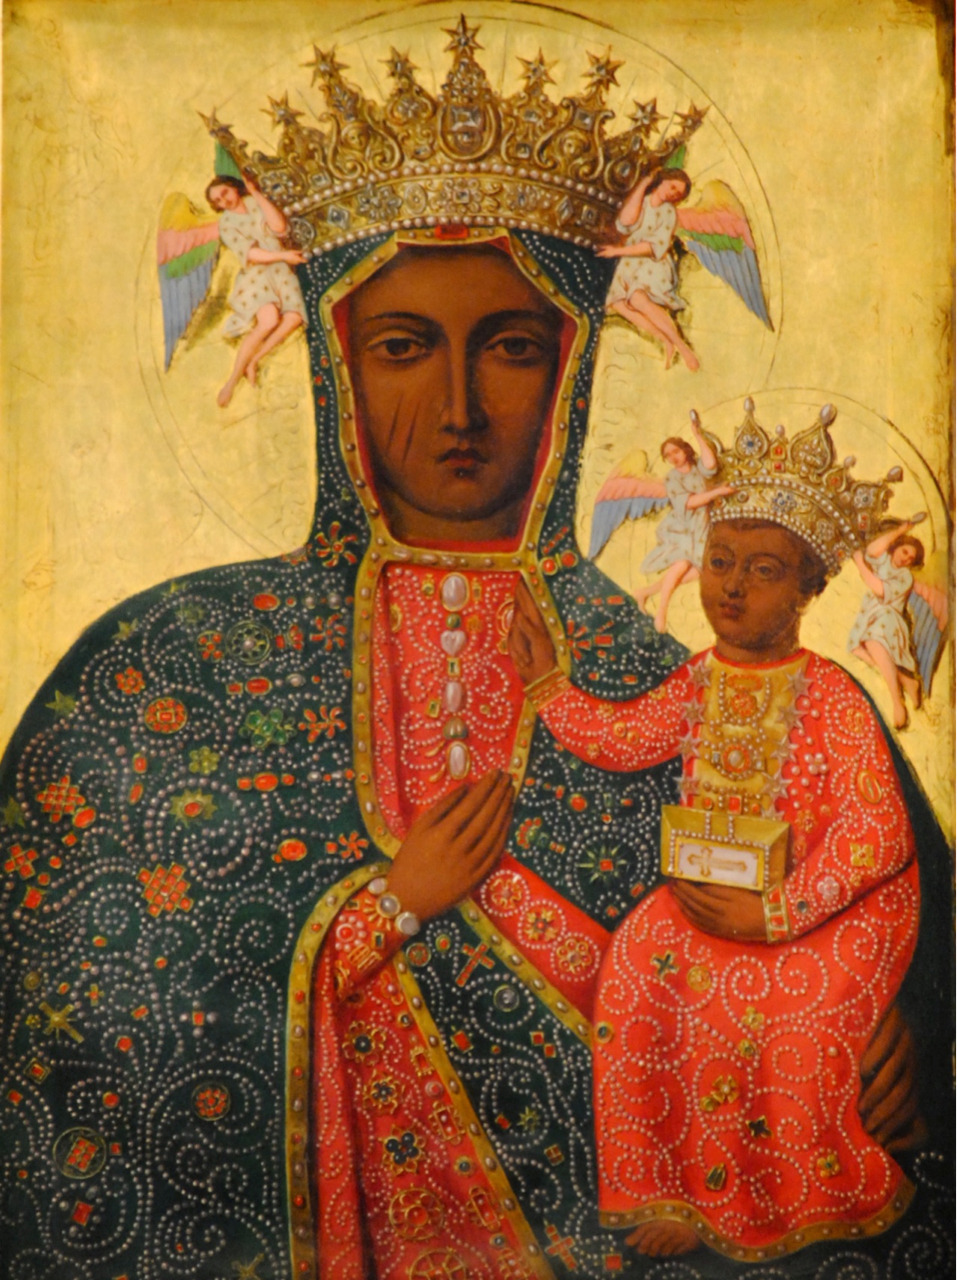 allaboutmary:  Our Lady of Częstochowa, Queen of Poland.